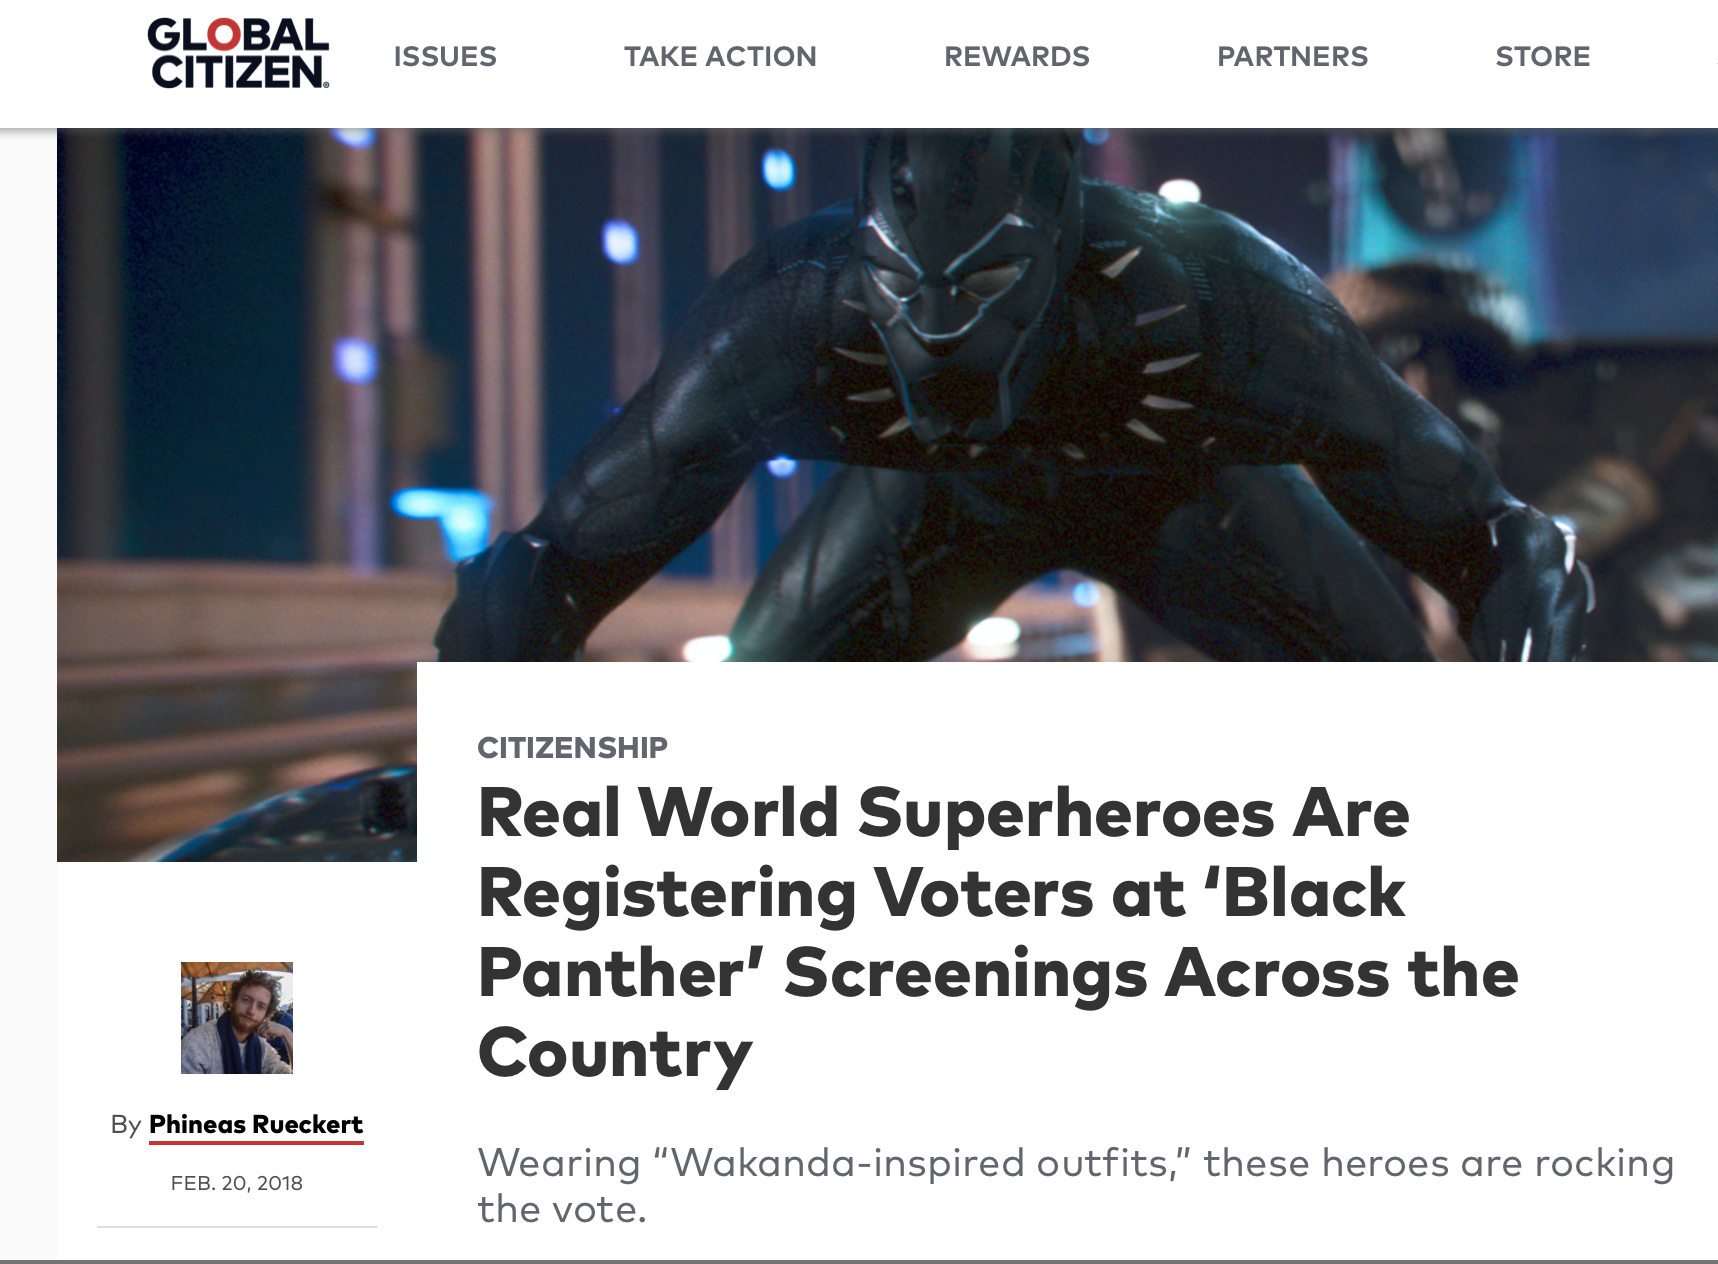 Real World Superheroes Are Registering Voters at 'Black Panther' Screenings Across the Country